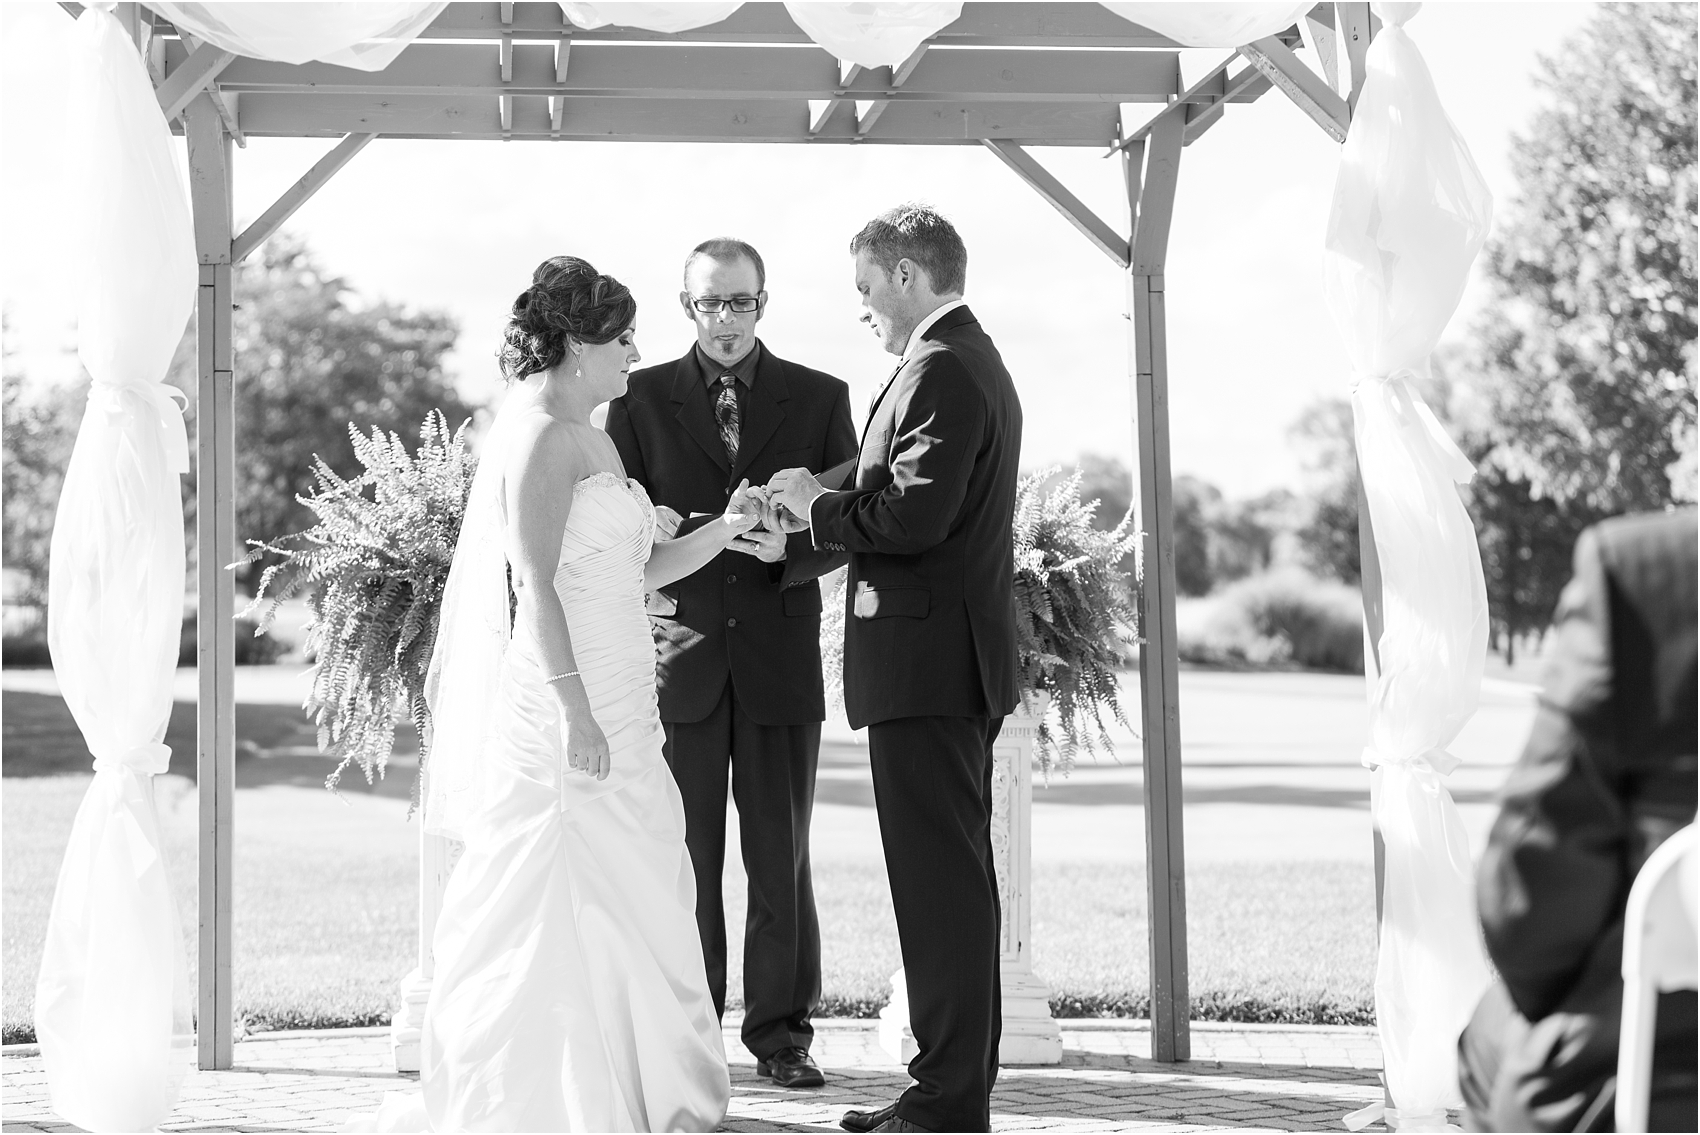 classic-wedding-photos-at-great-oaks-country-club-in-rochester-hills-mi-by-courtney-carolyn-photography_0081.jpg